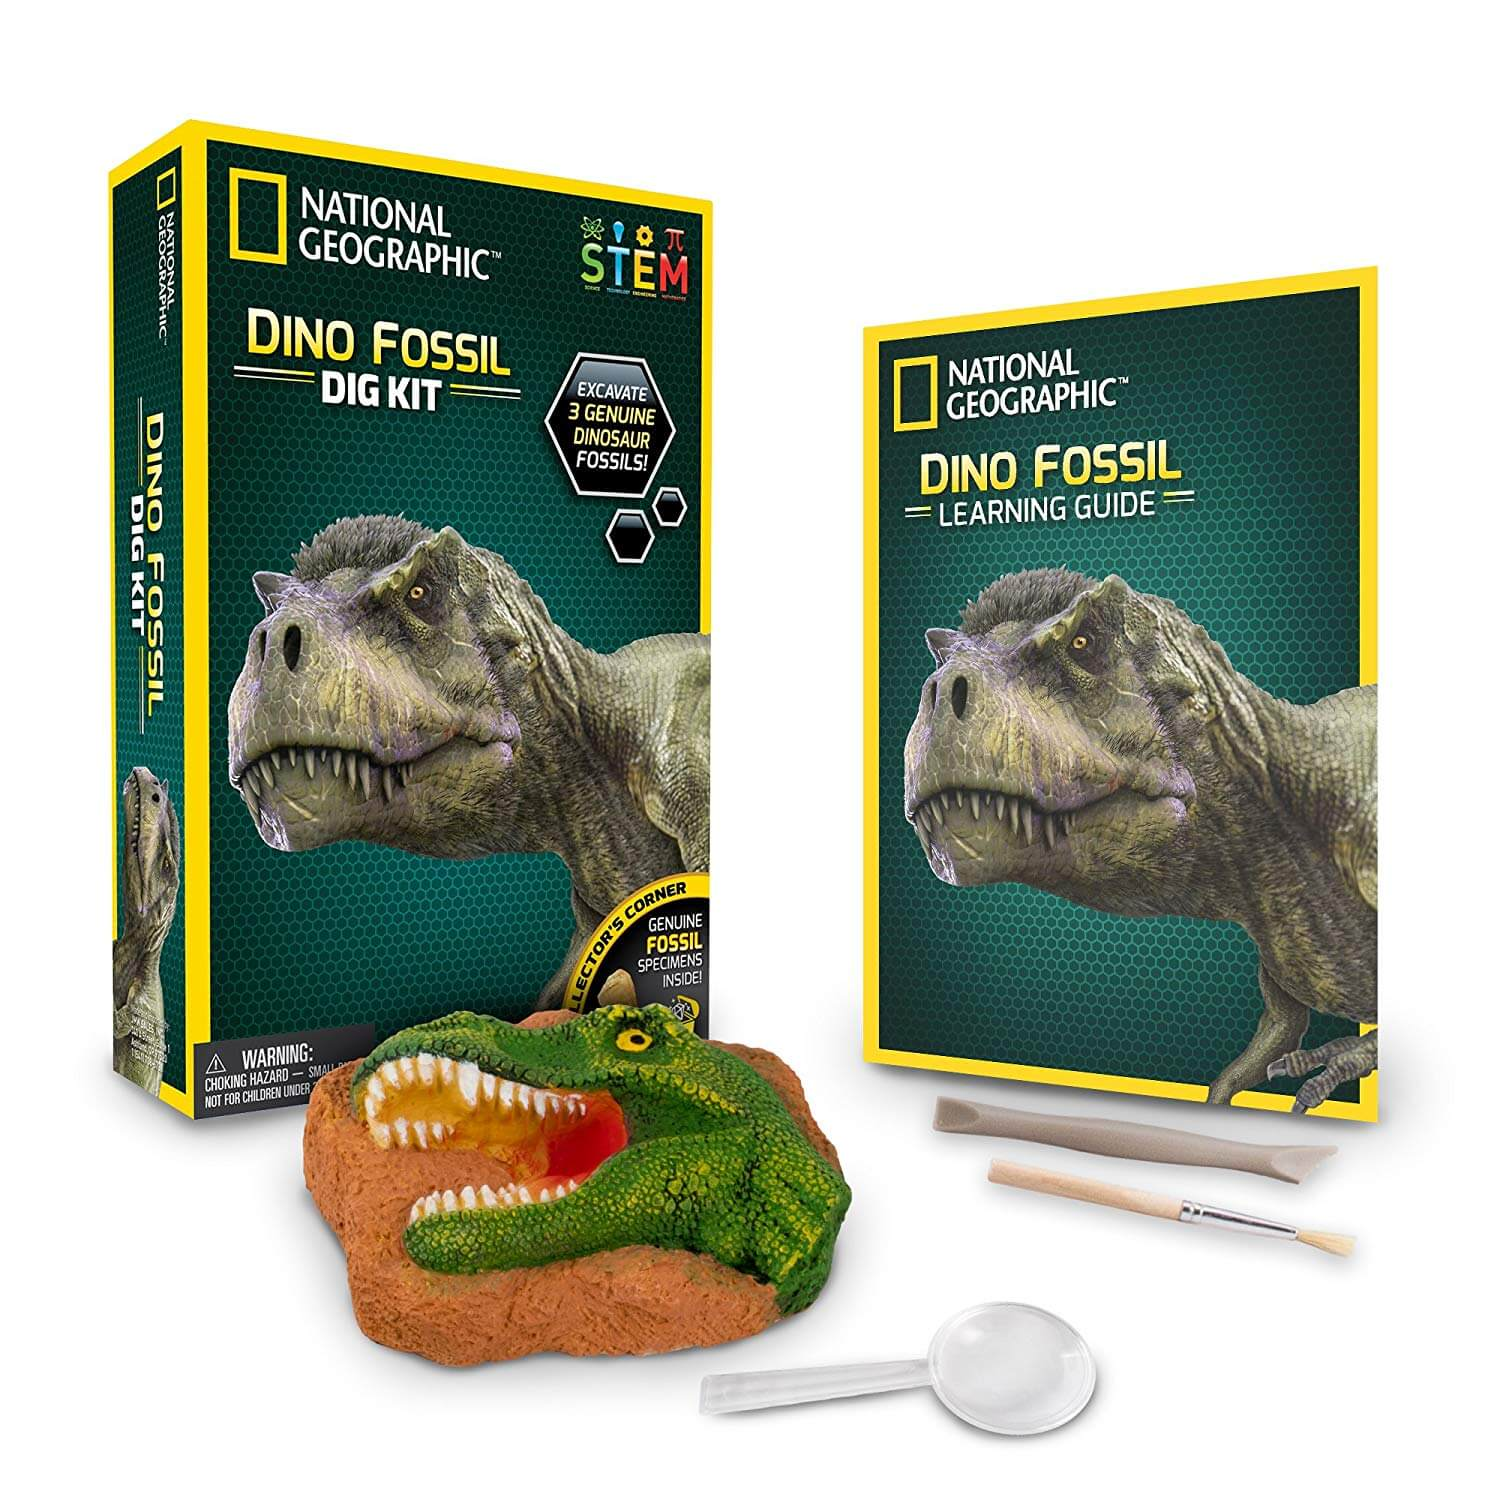 dino-fossil-dig-kit-educational